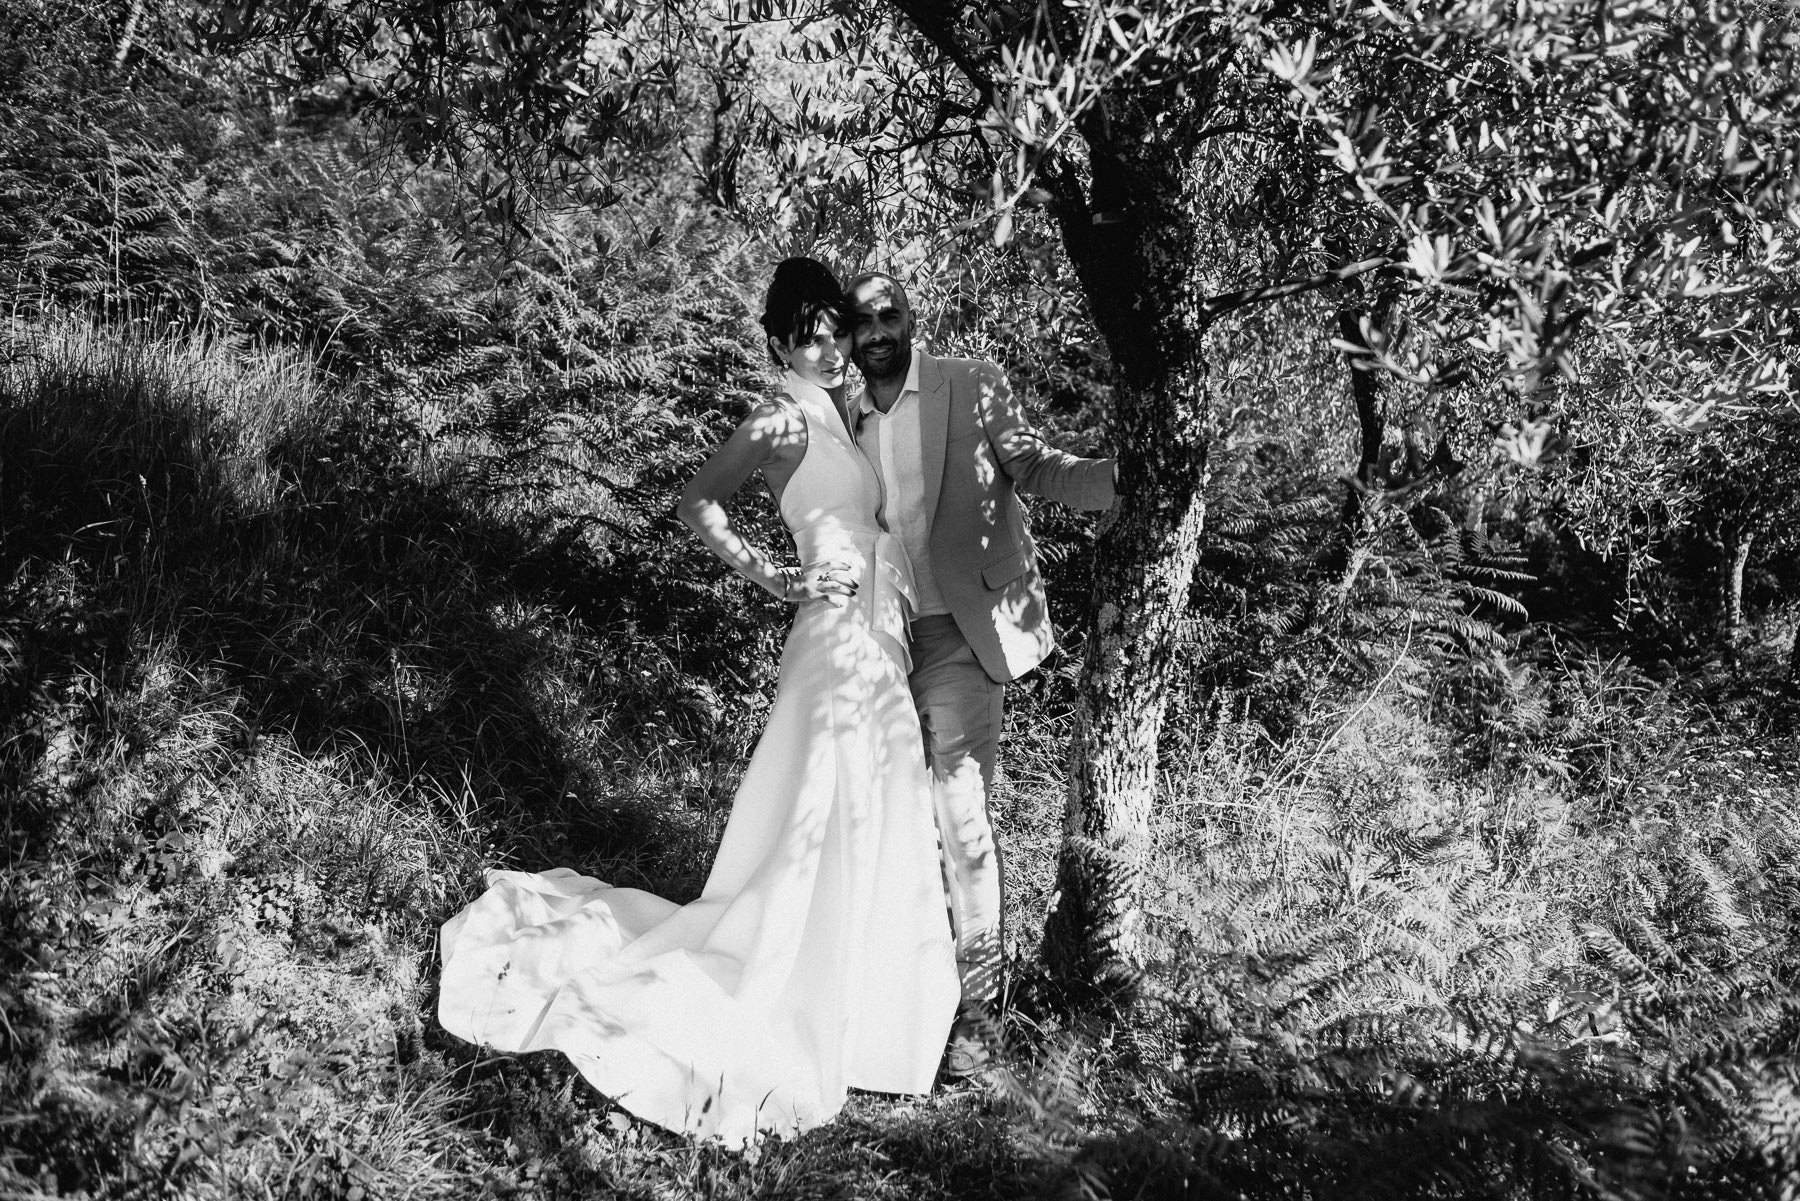 creative wedding photographer tuscany bridal portrait session ph